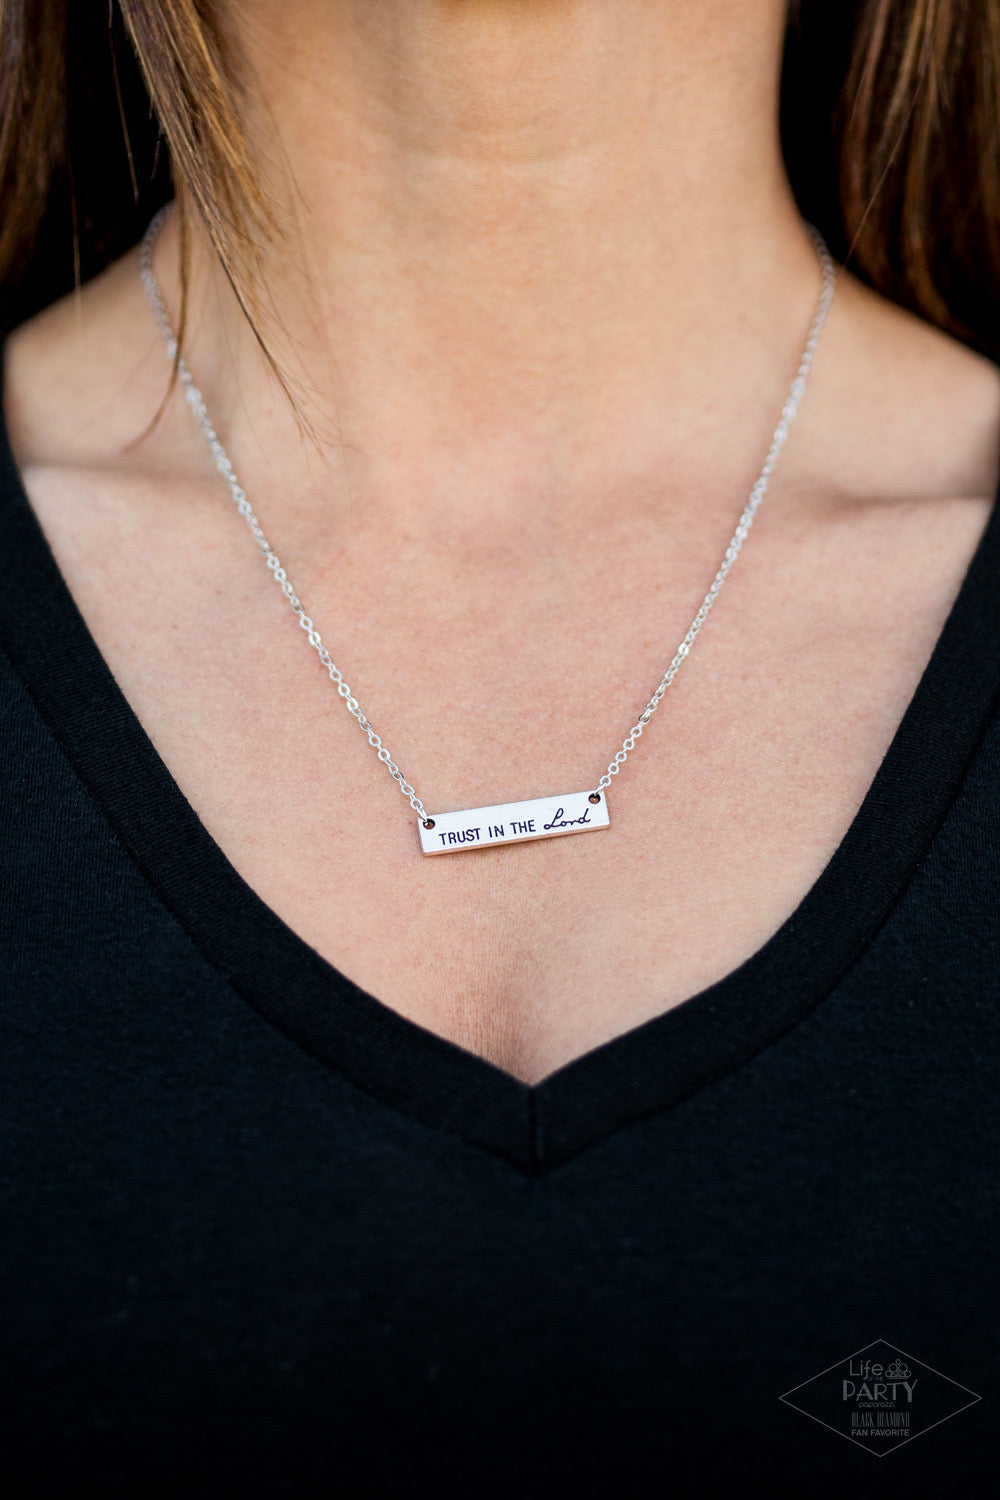 Trust In The Lord - Silver Necklace 1234N